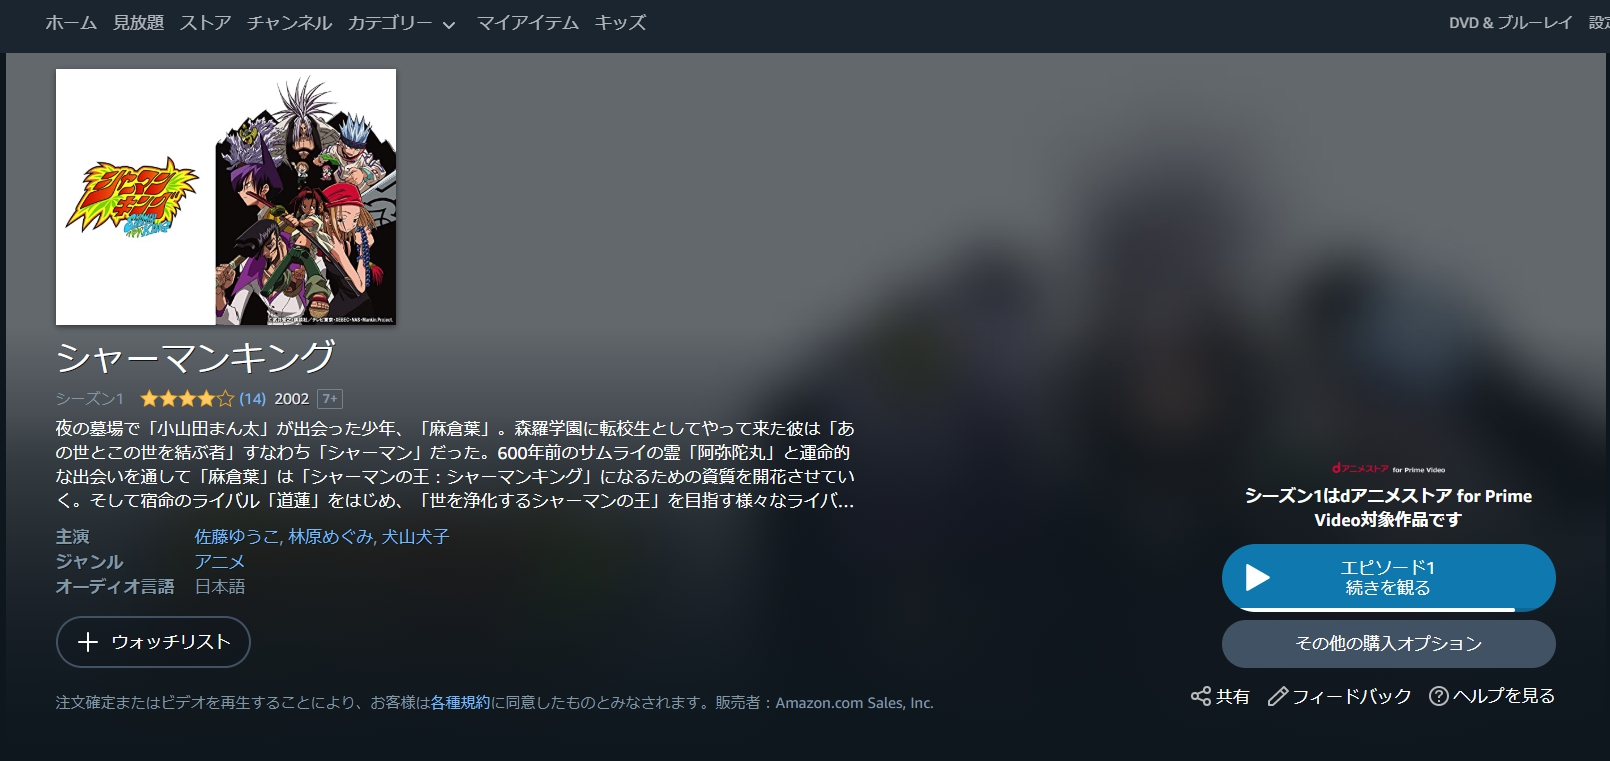 Video ストア prime D は と アニメ for